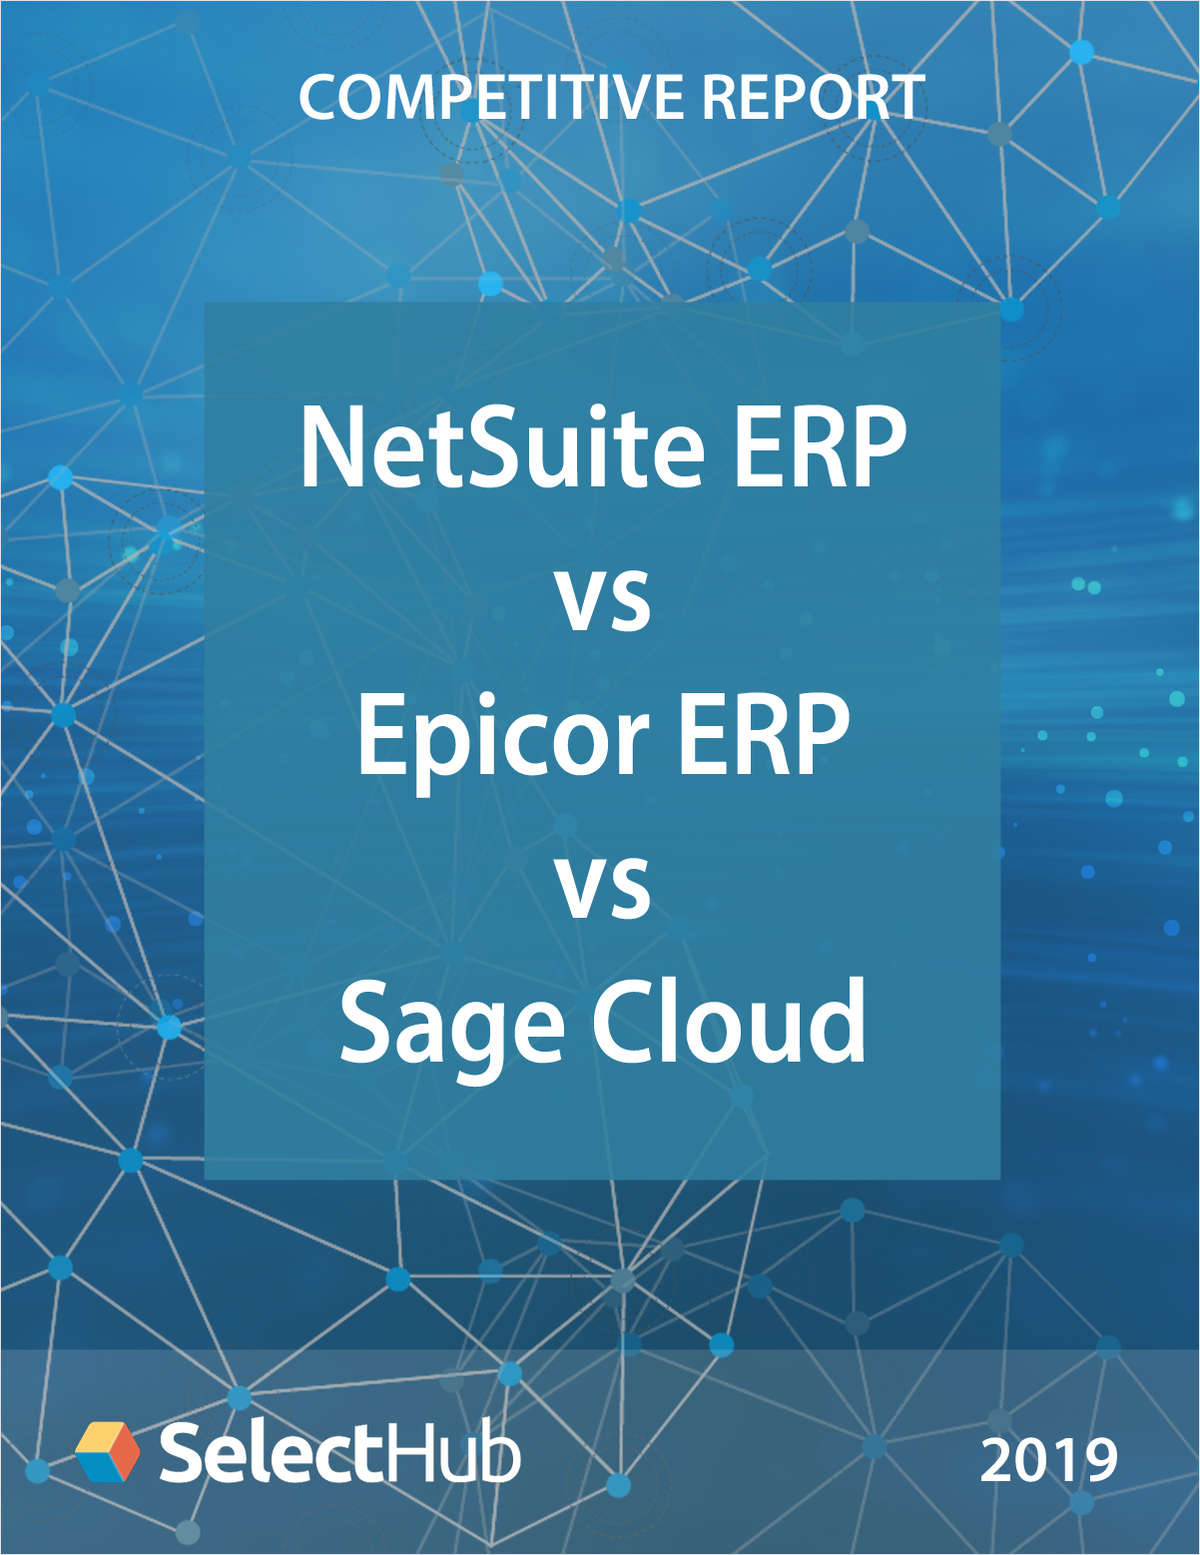 NetSuite ERP vs. Epicor ERP vs. Sage Business Cloud - Competitive Report